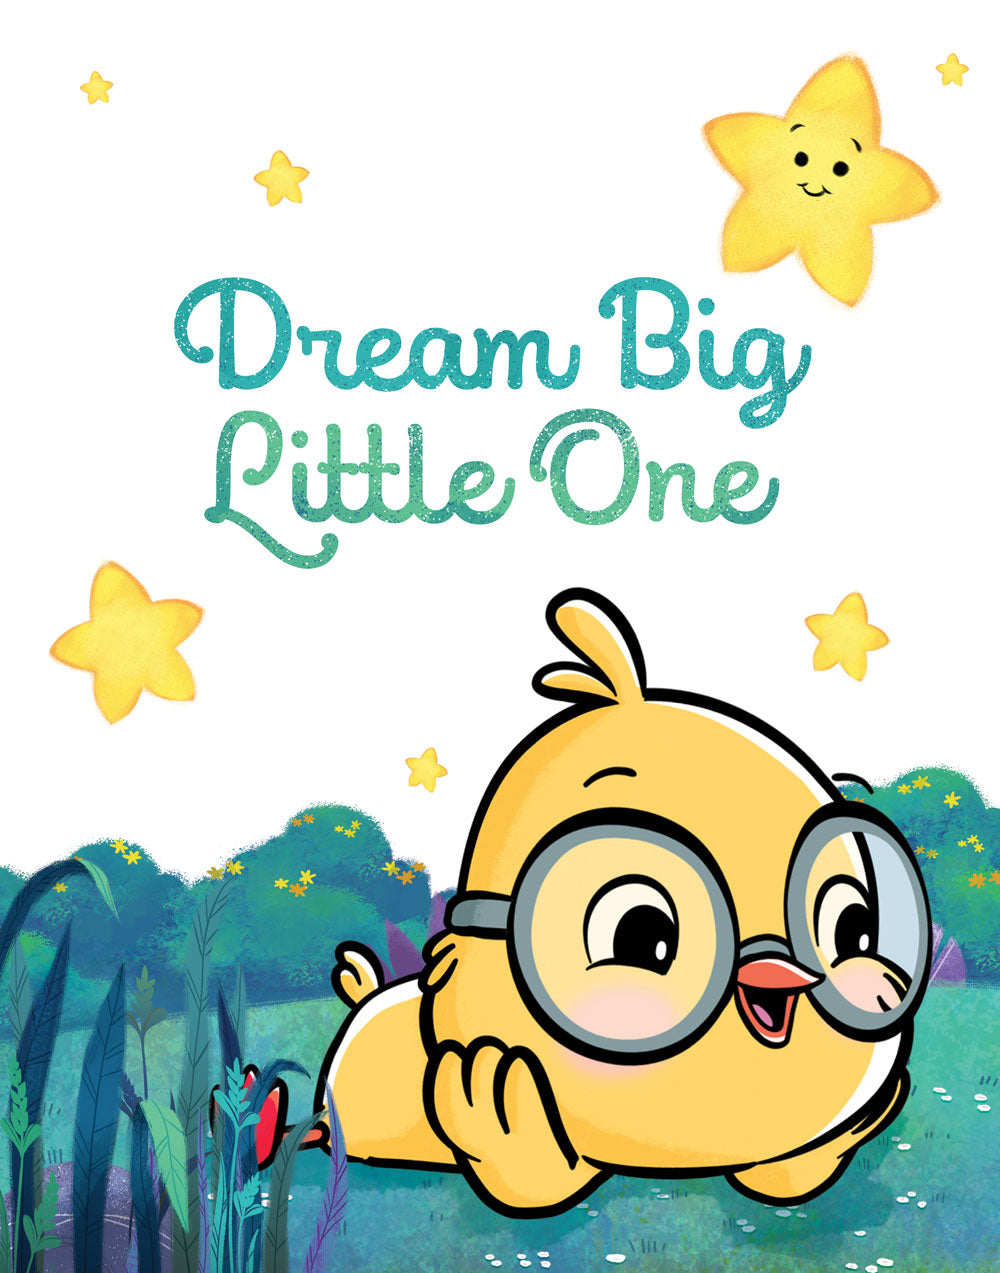 Dream Big Little One: Inspirational Nursery Print